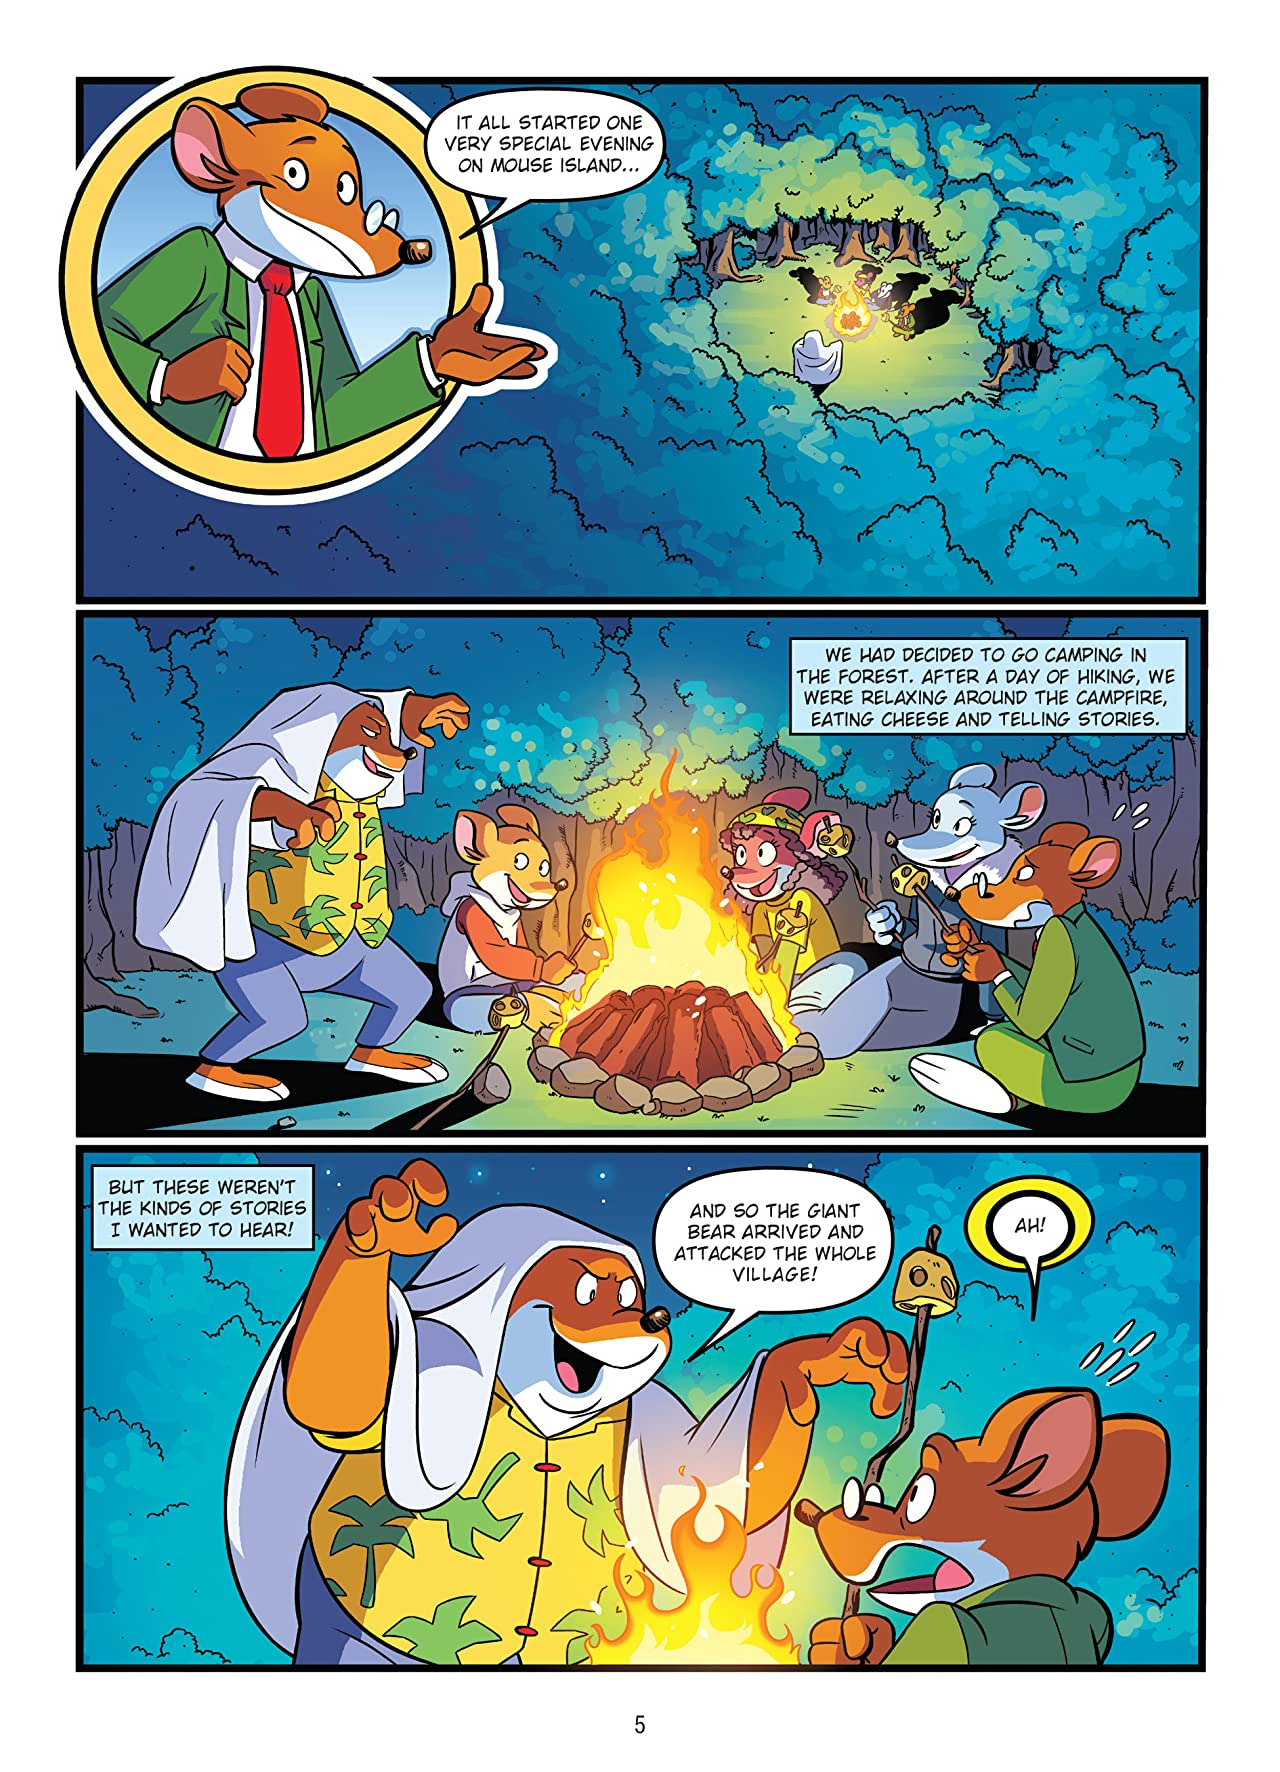 Geronimo Stilton Vol. 17: The Mystery of the Pirate Ship